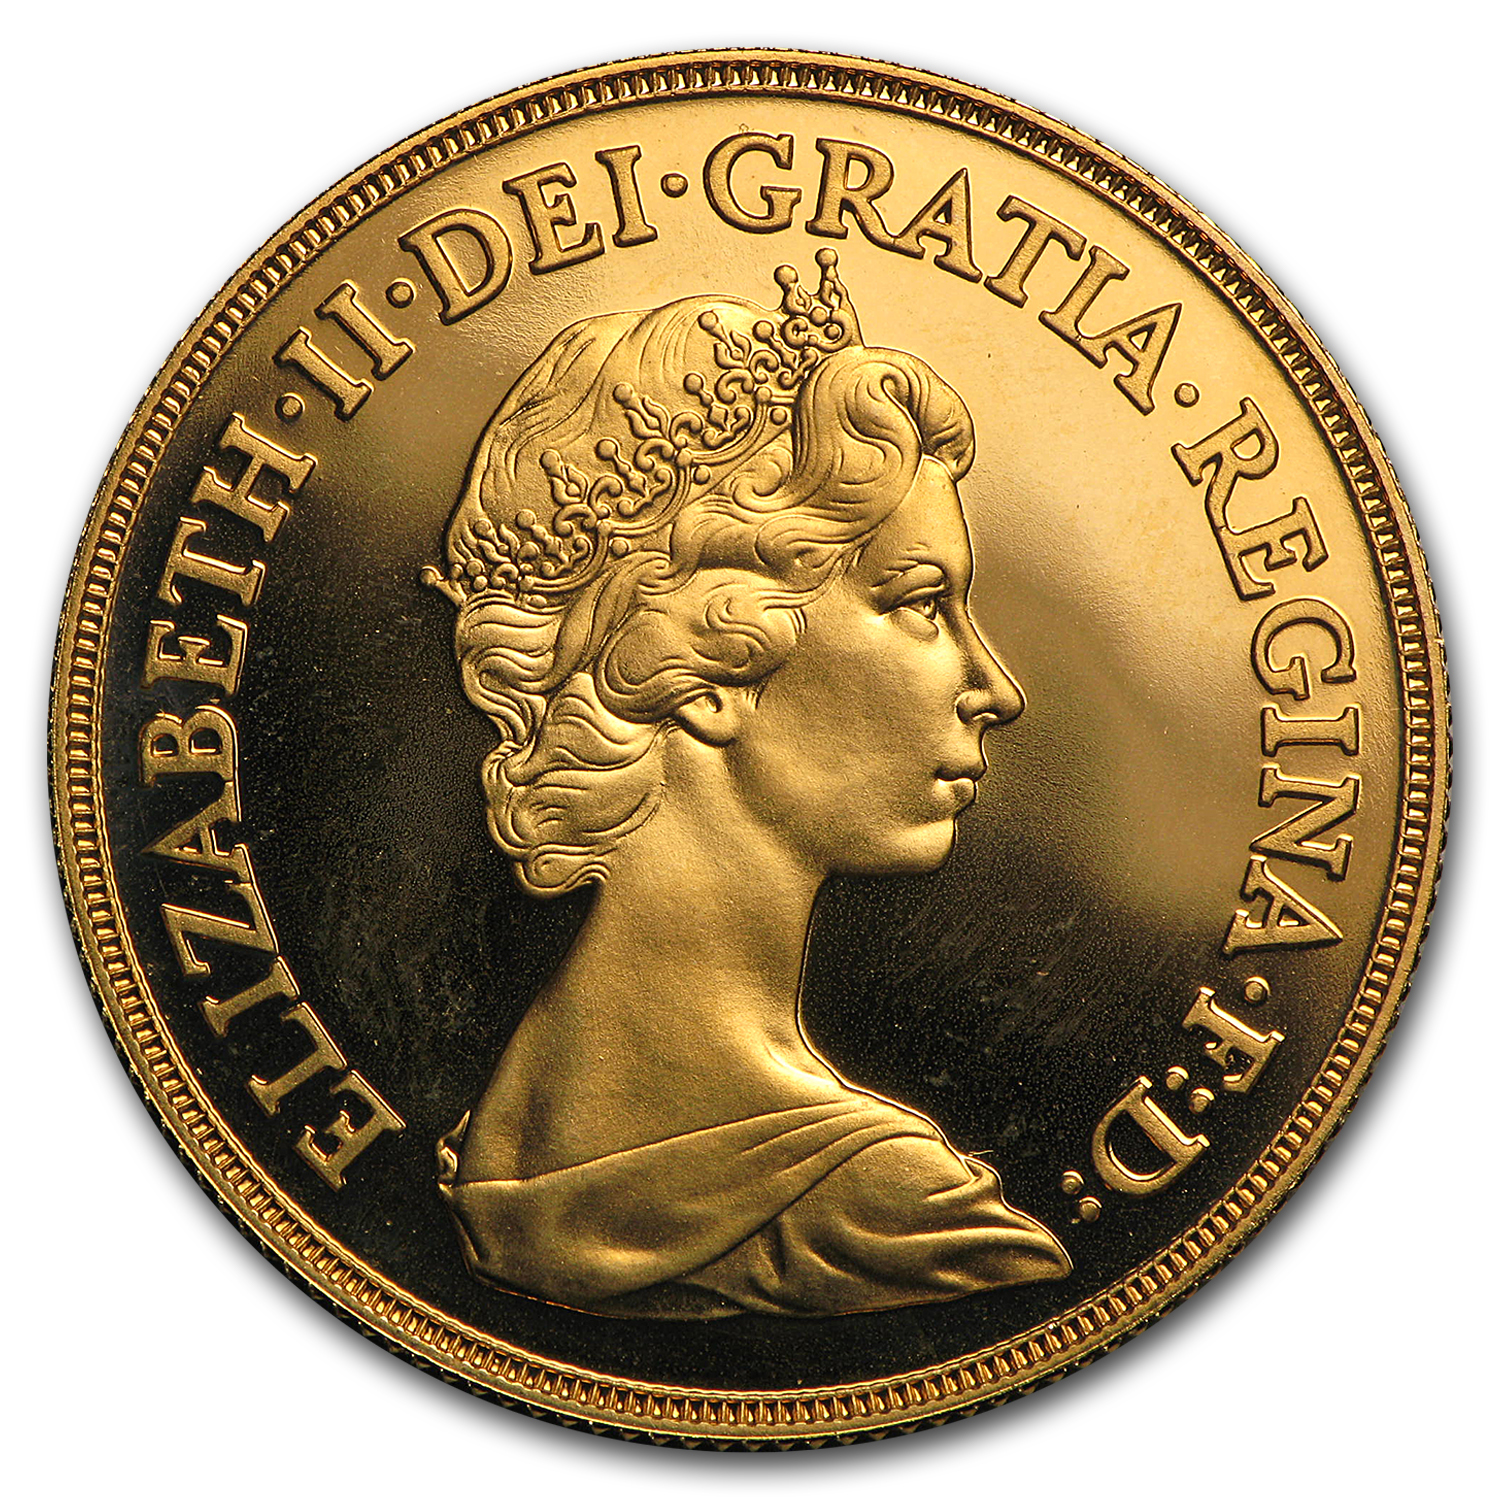 Great Britain Gold £2 Elizabeth II (Proof) AGW .4708